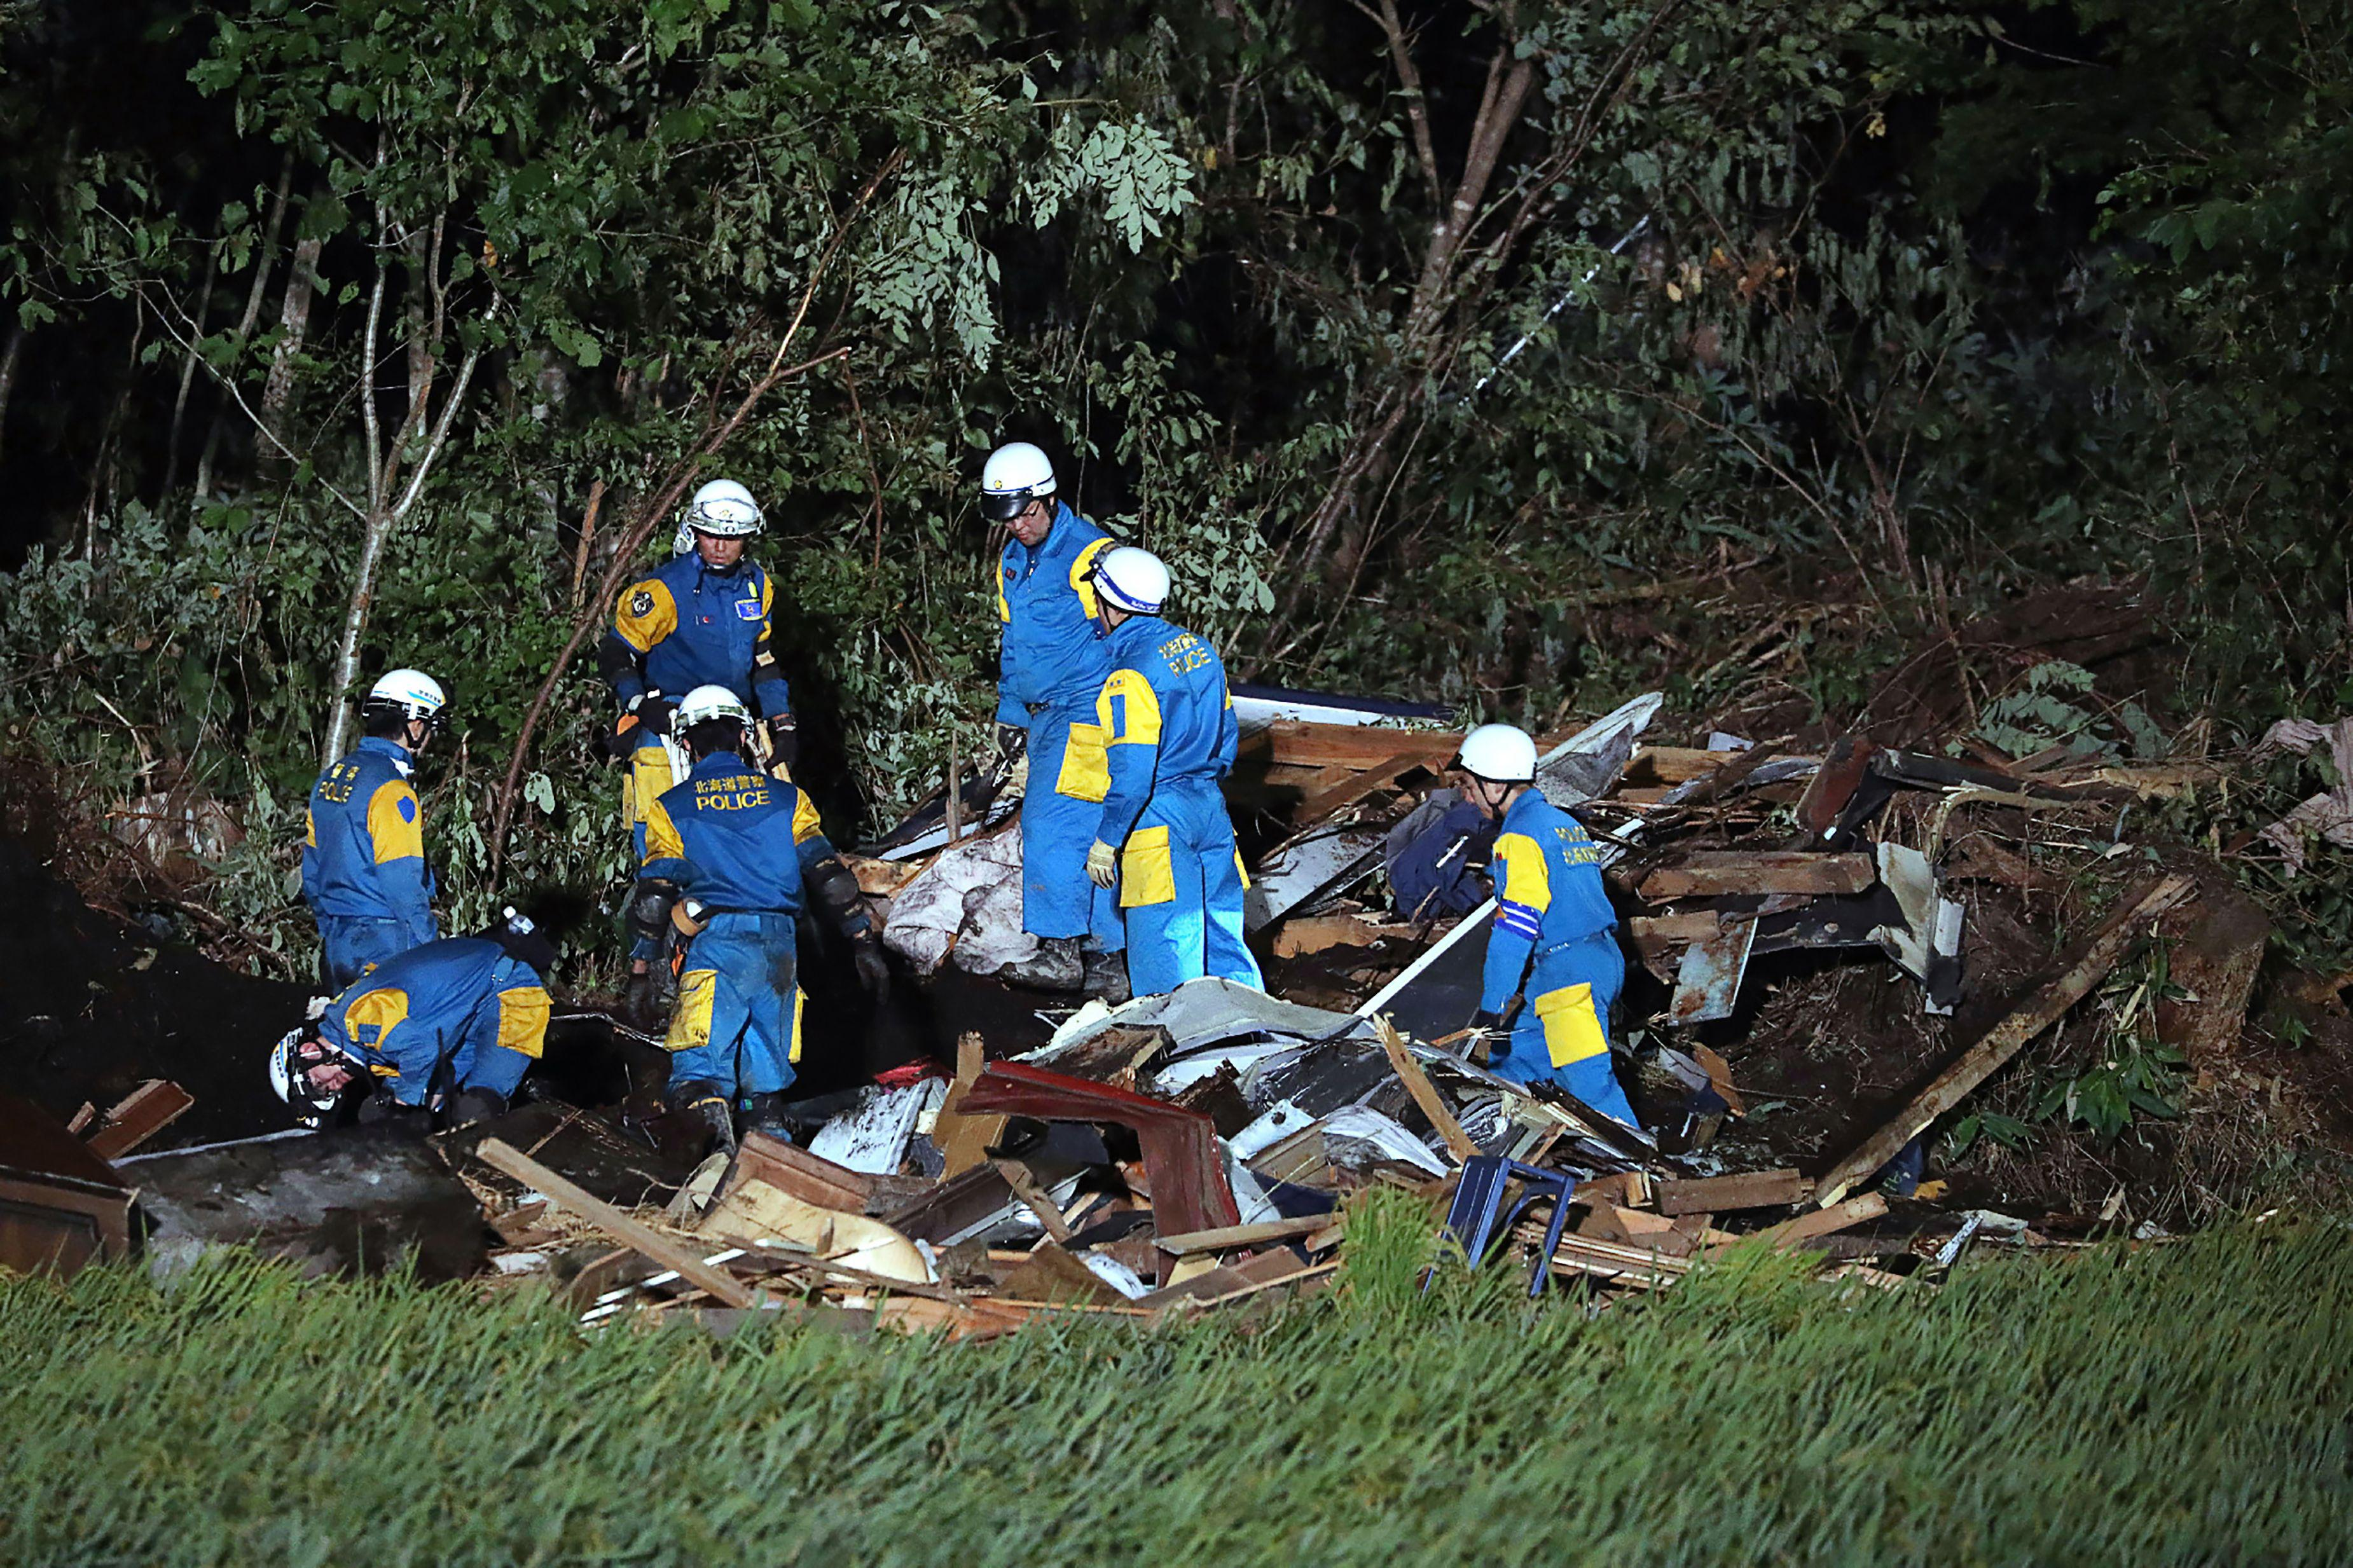 Japanese policemen work during a rescue operation in the area affected by landslides triggered by the earthquake.